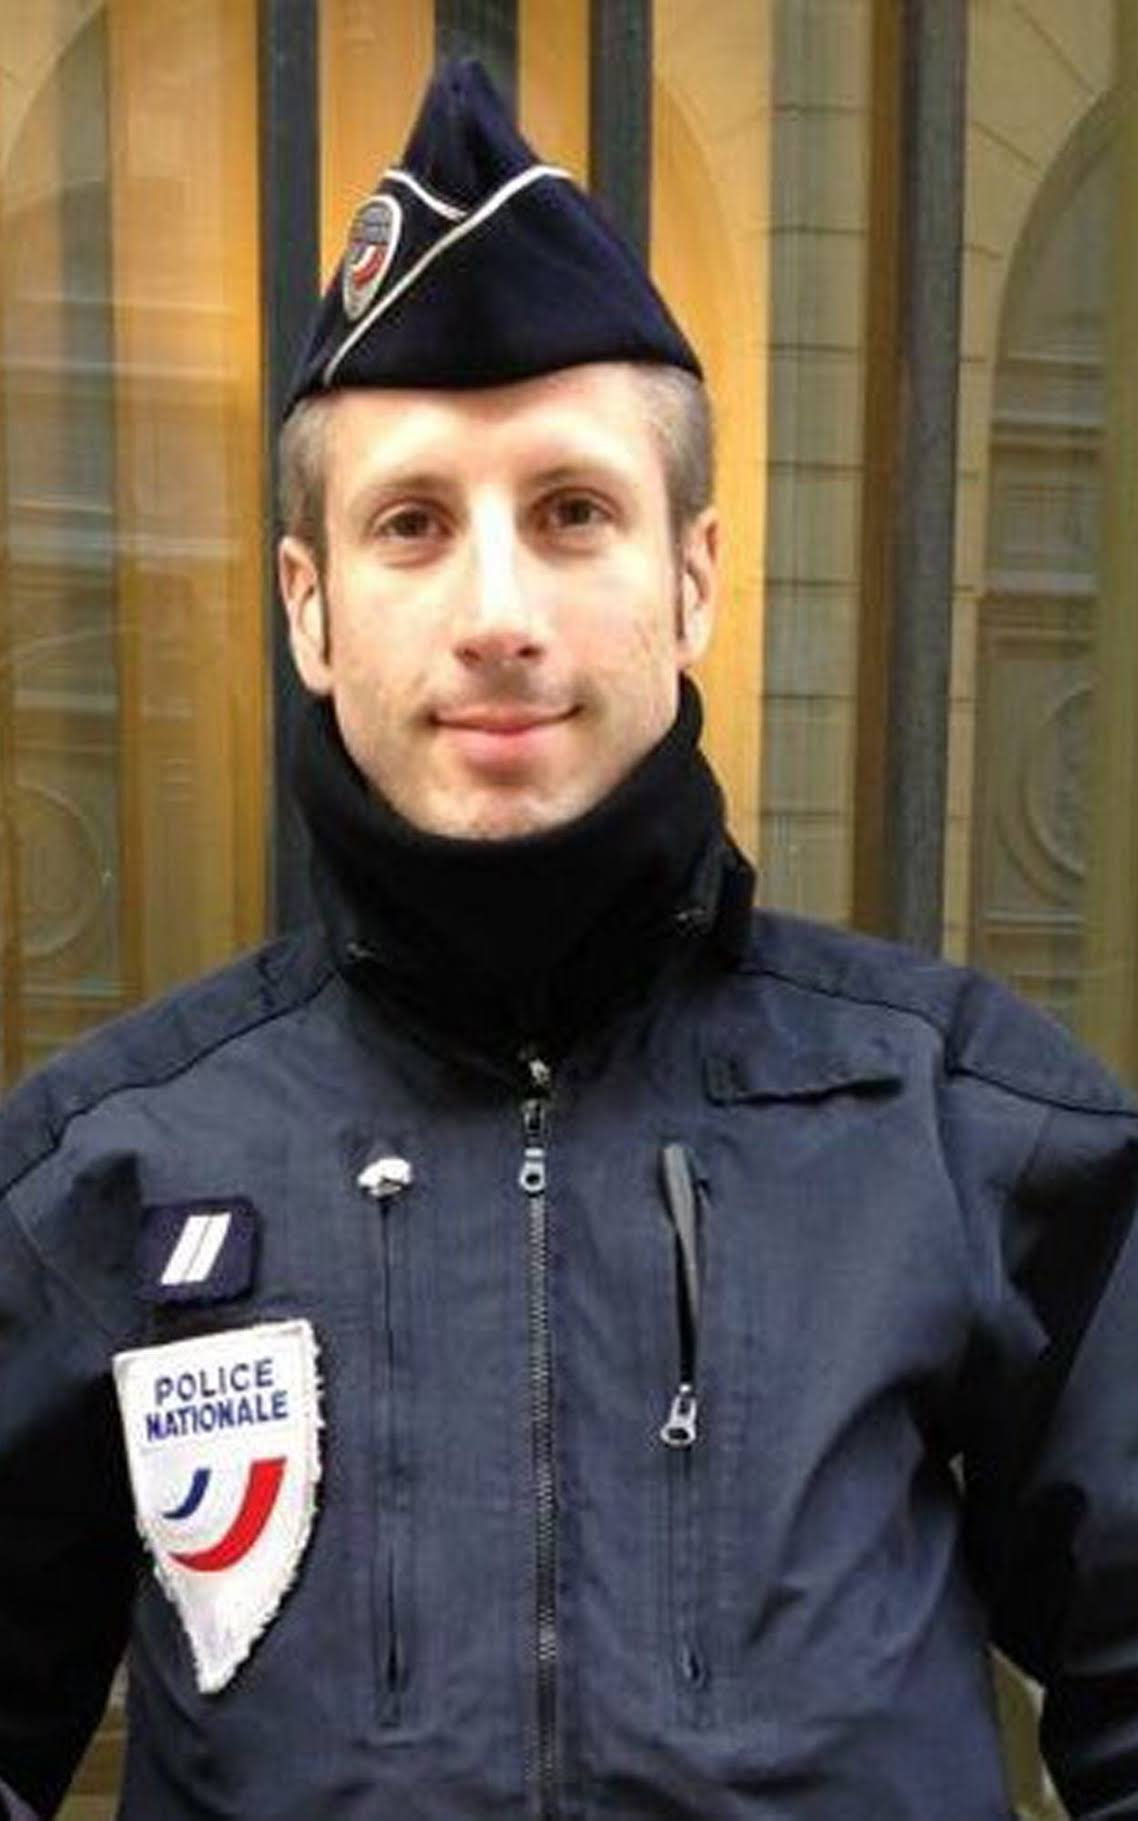 RIP Paris Police Officer Xavier Jugele shot & killed Thursday, 4/20/17, during a terror attack on the Champ-Elysees. #THESACRIFICECONTINUES https://t.co/Uv22AipZm1